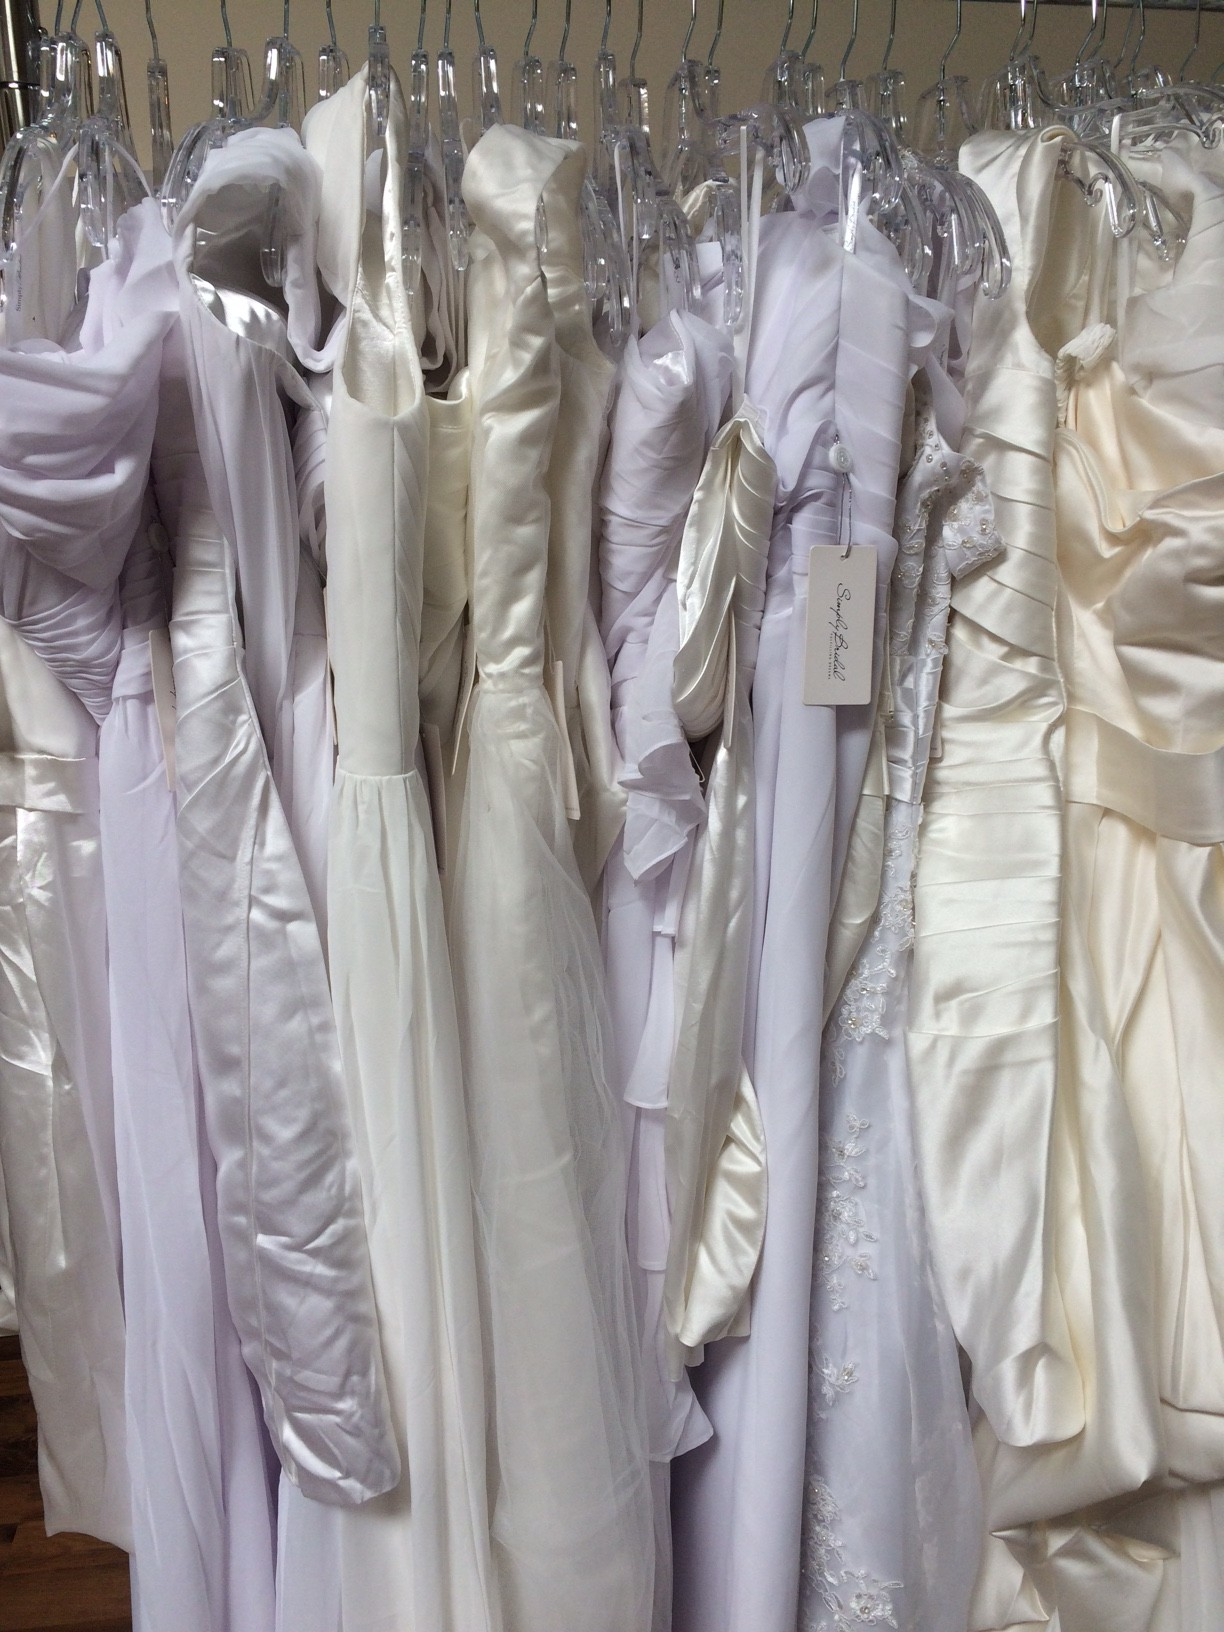 Thank You Simply Bridal For Donating 300 Wedding Dresses To Our Portland Boutique These Range From Sizes 0 30 In An Assortment Of Styles